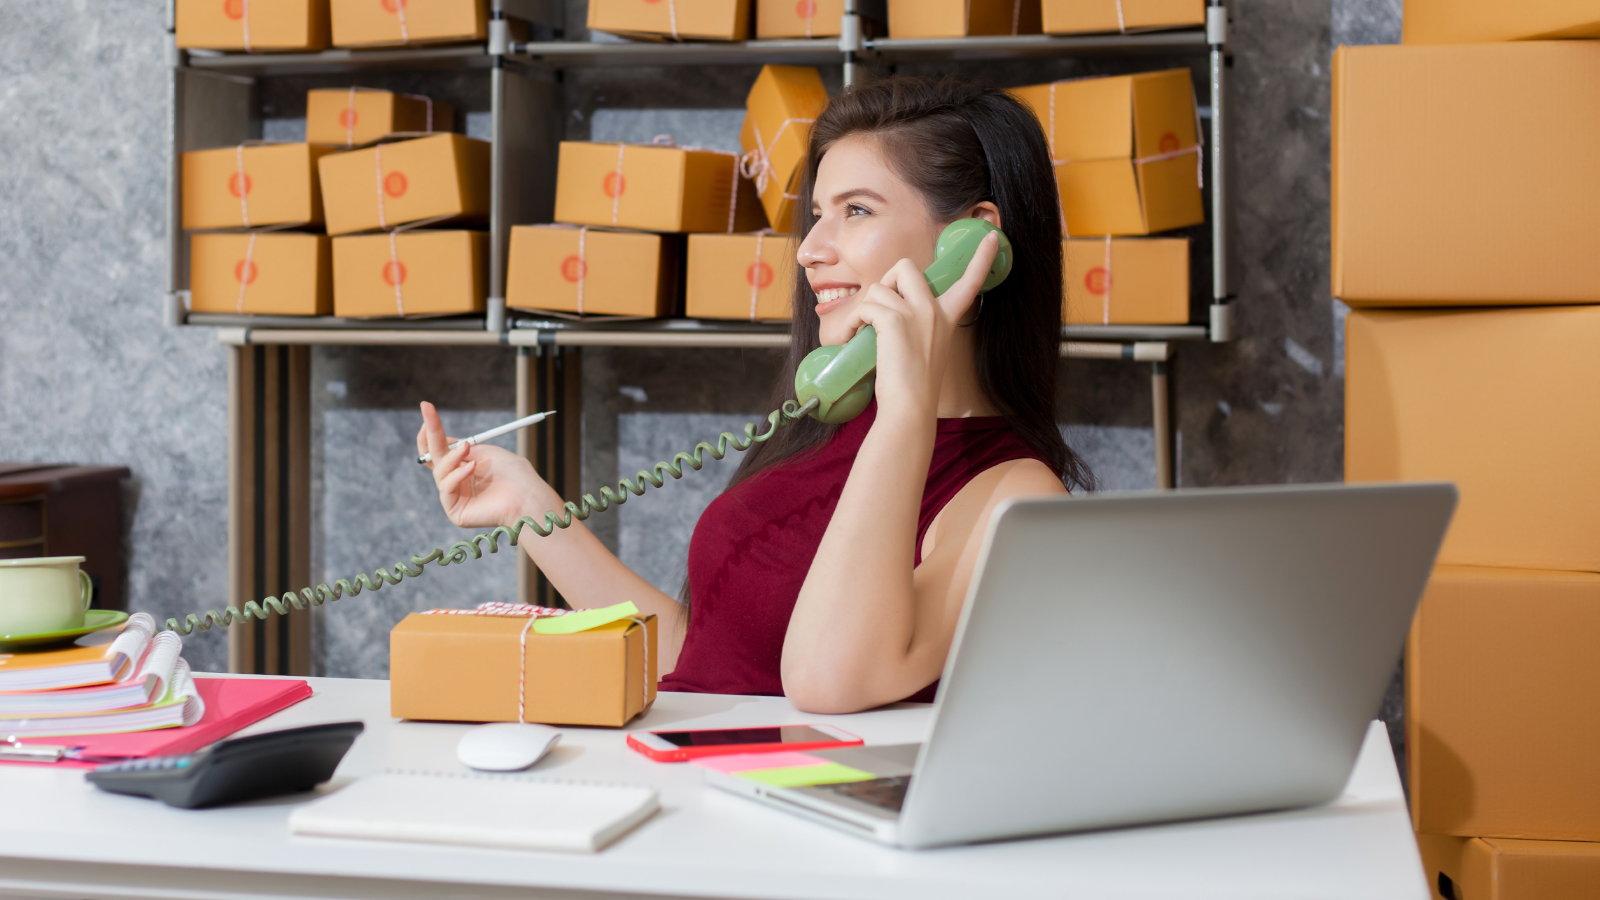 business woman on phone with shipping box and computer on desk